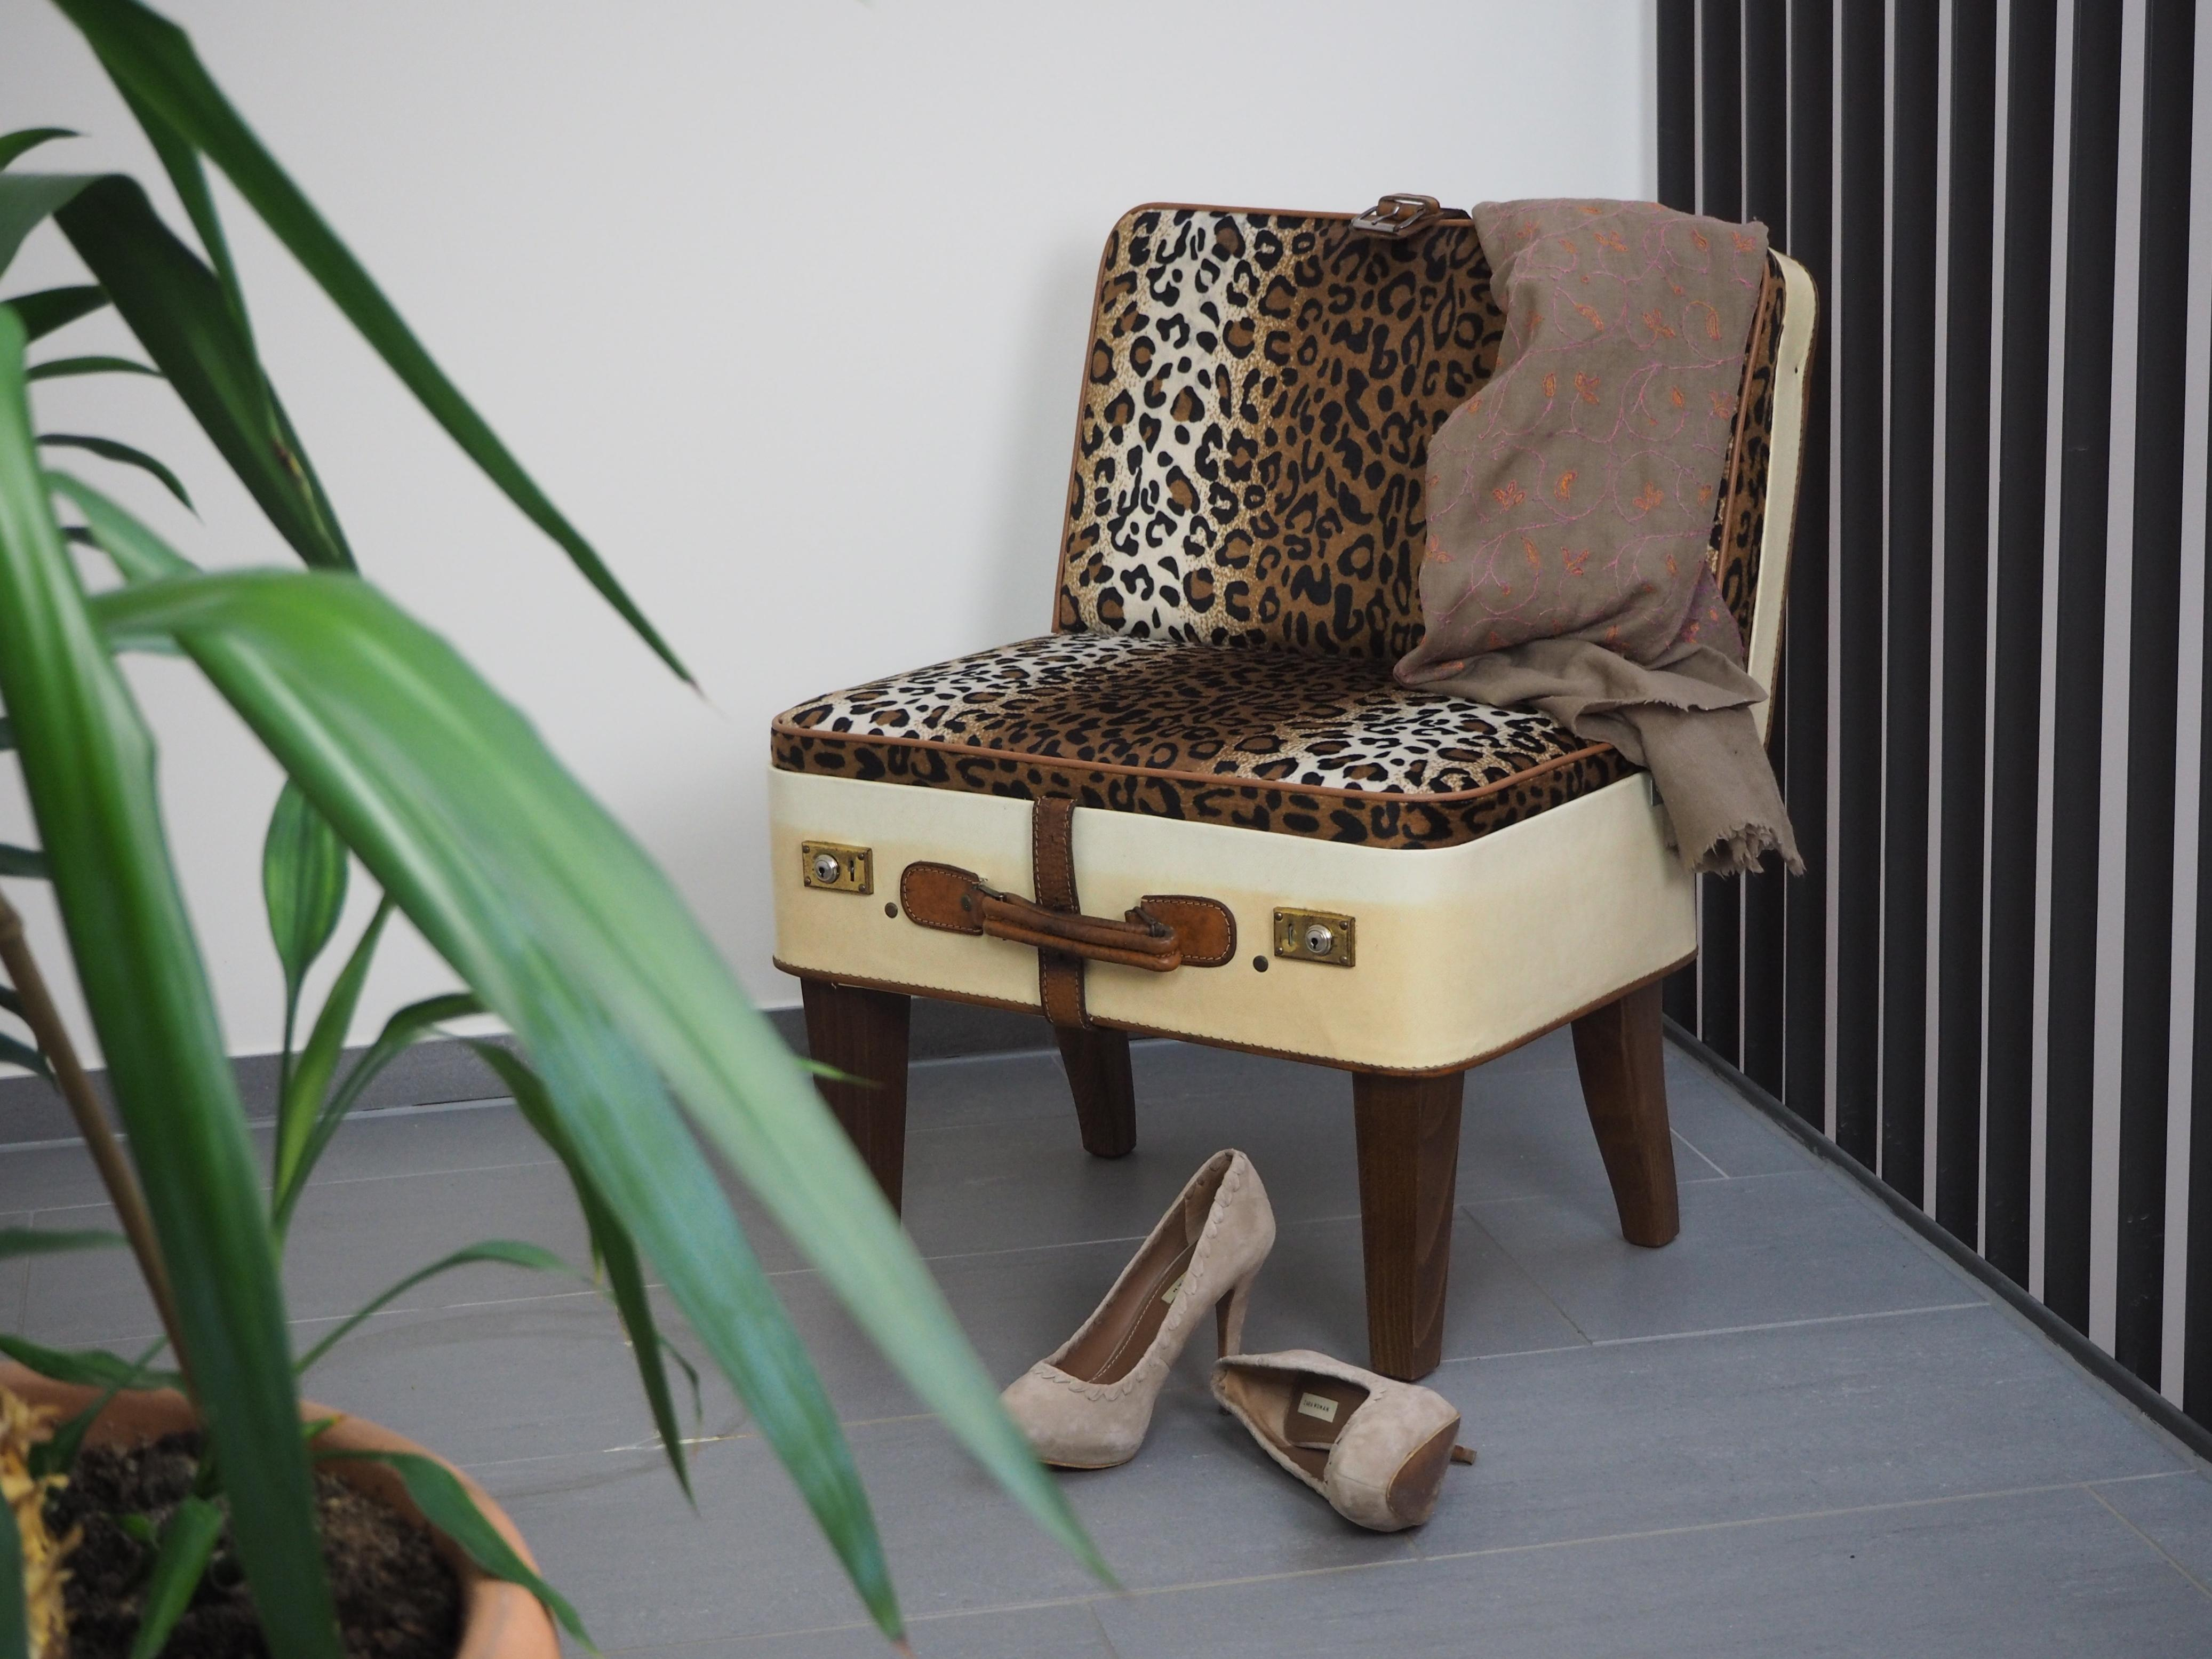 Wild side of Life #koffer #upcycling #handarbeit ©IUNICUM GmbH